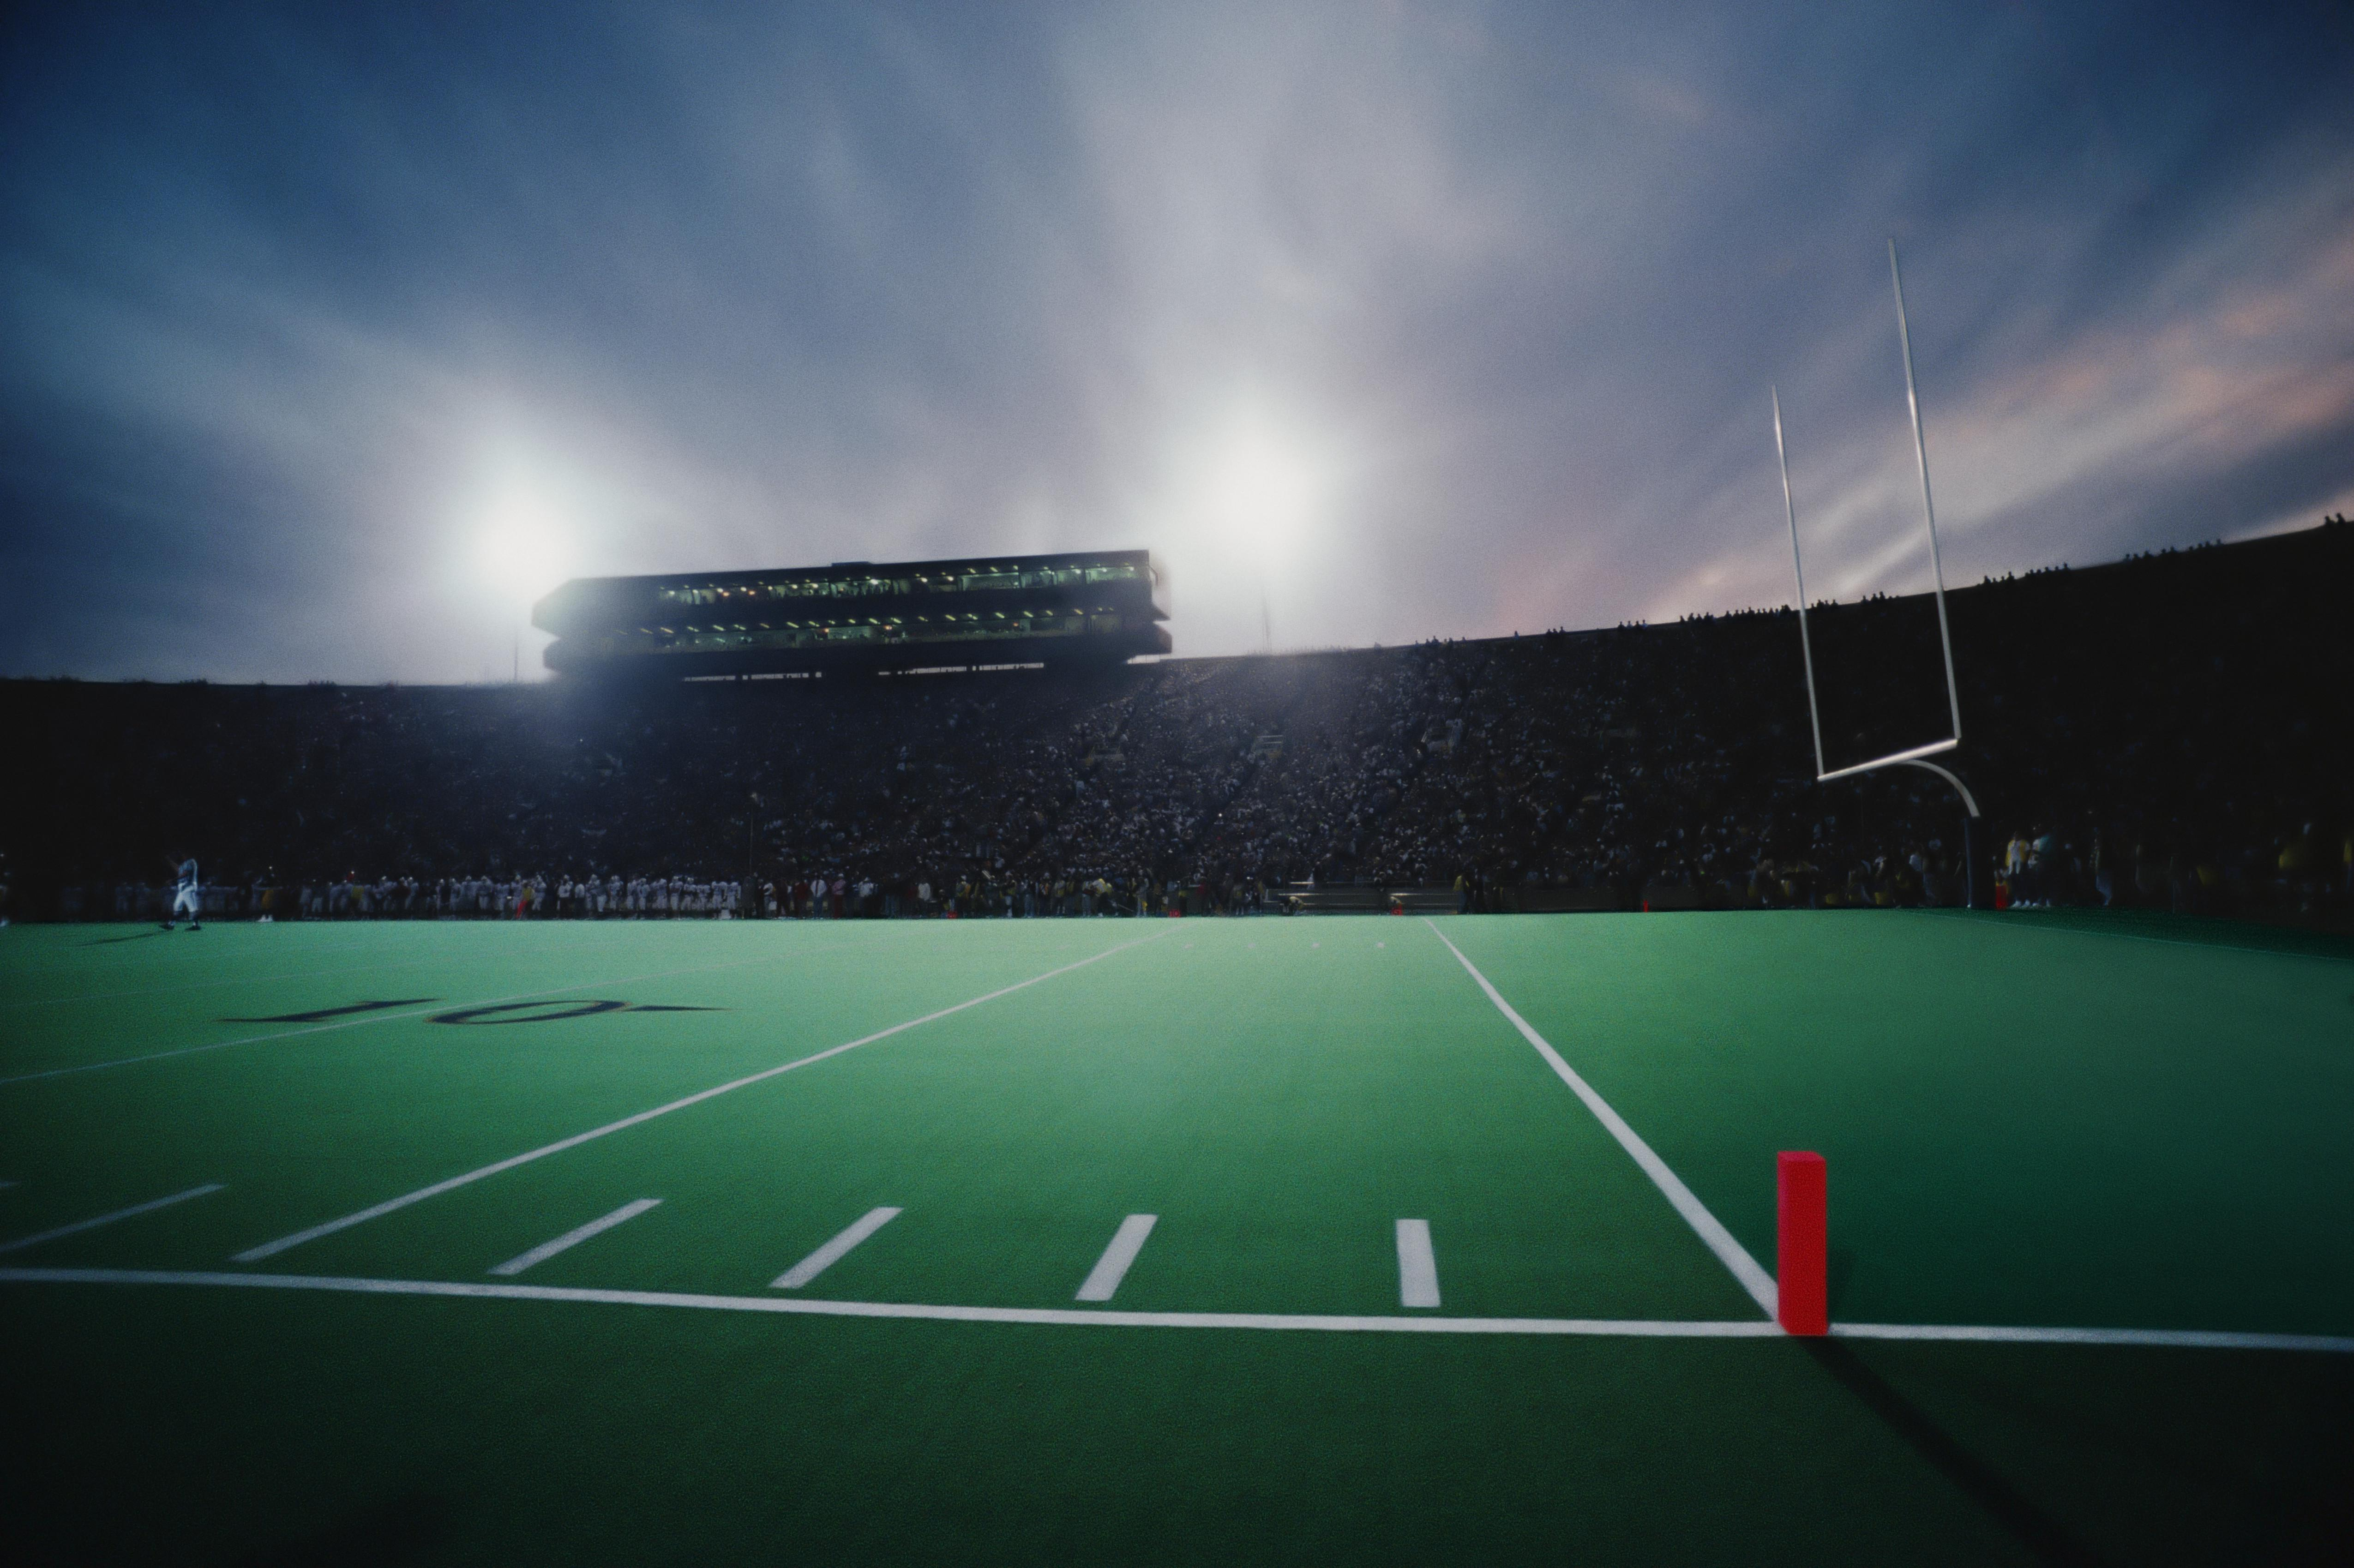 Football stadium filled with spectators during game, twilight